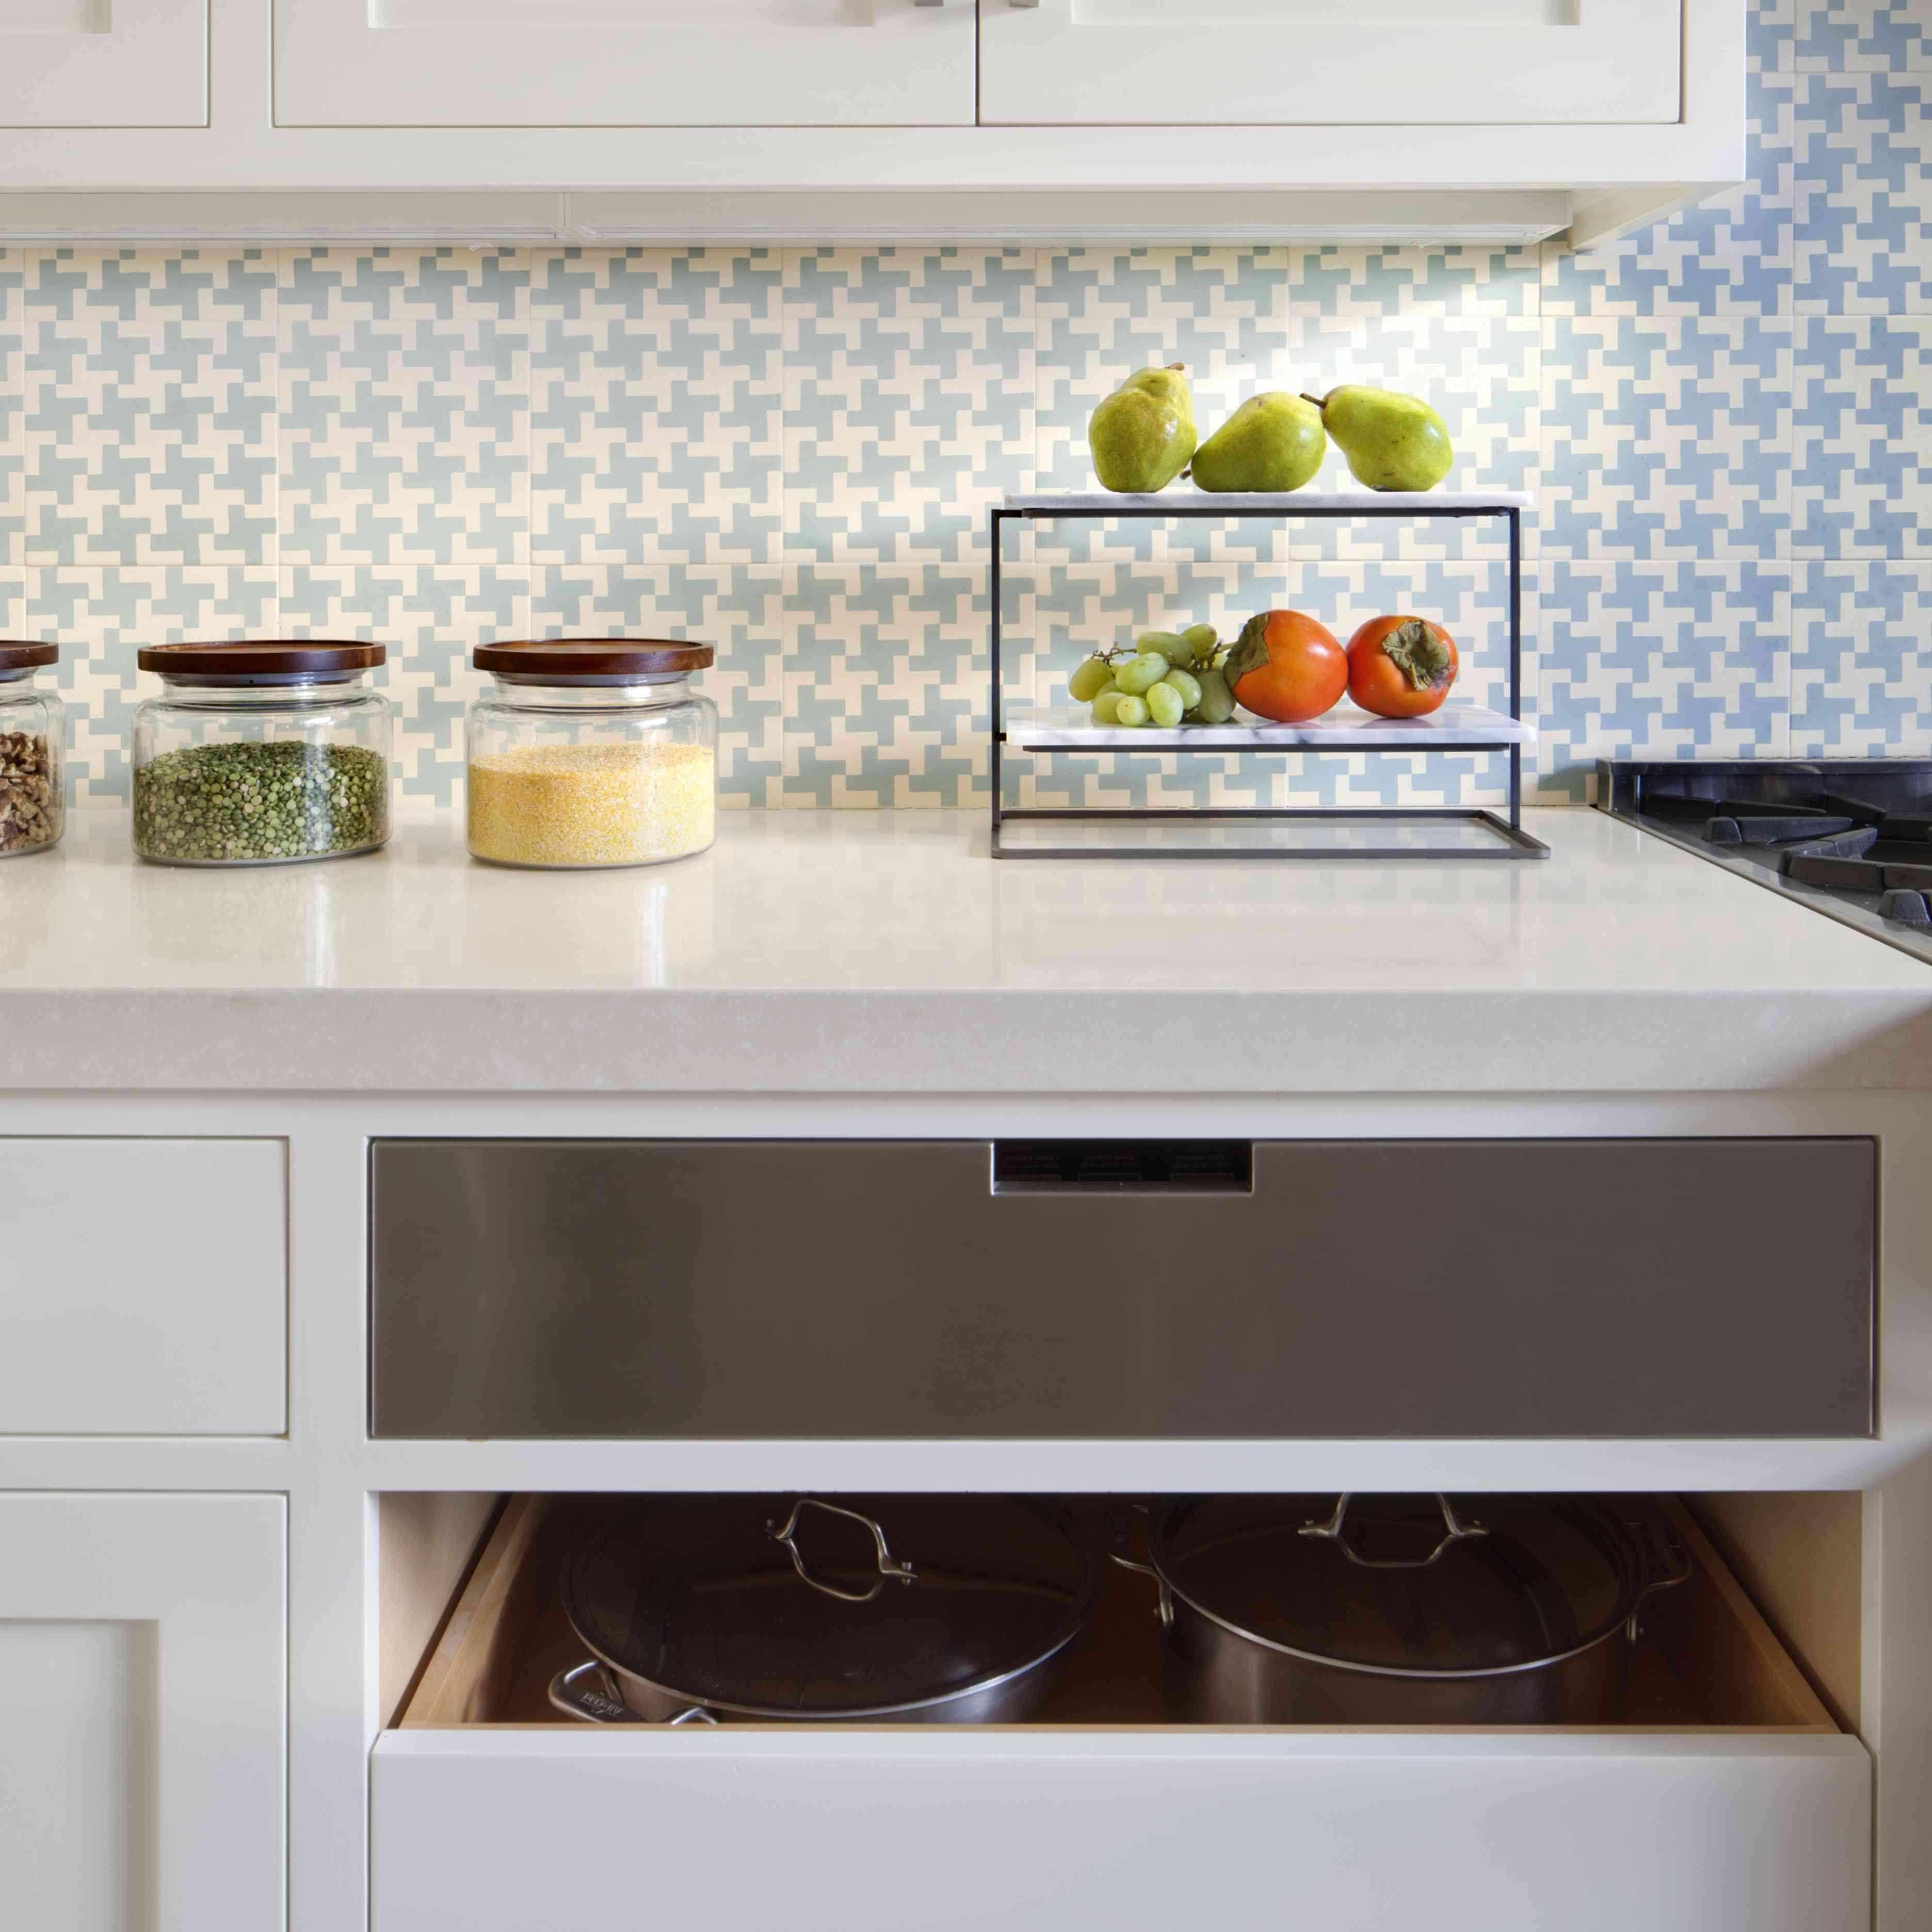 makeover of the week - mansfield + o'neil kitchen with blue subway tile